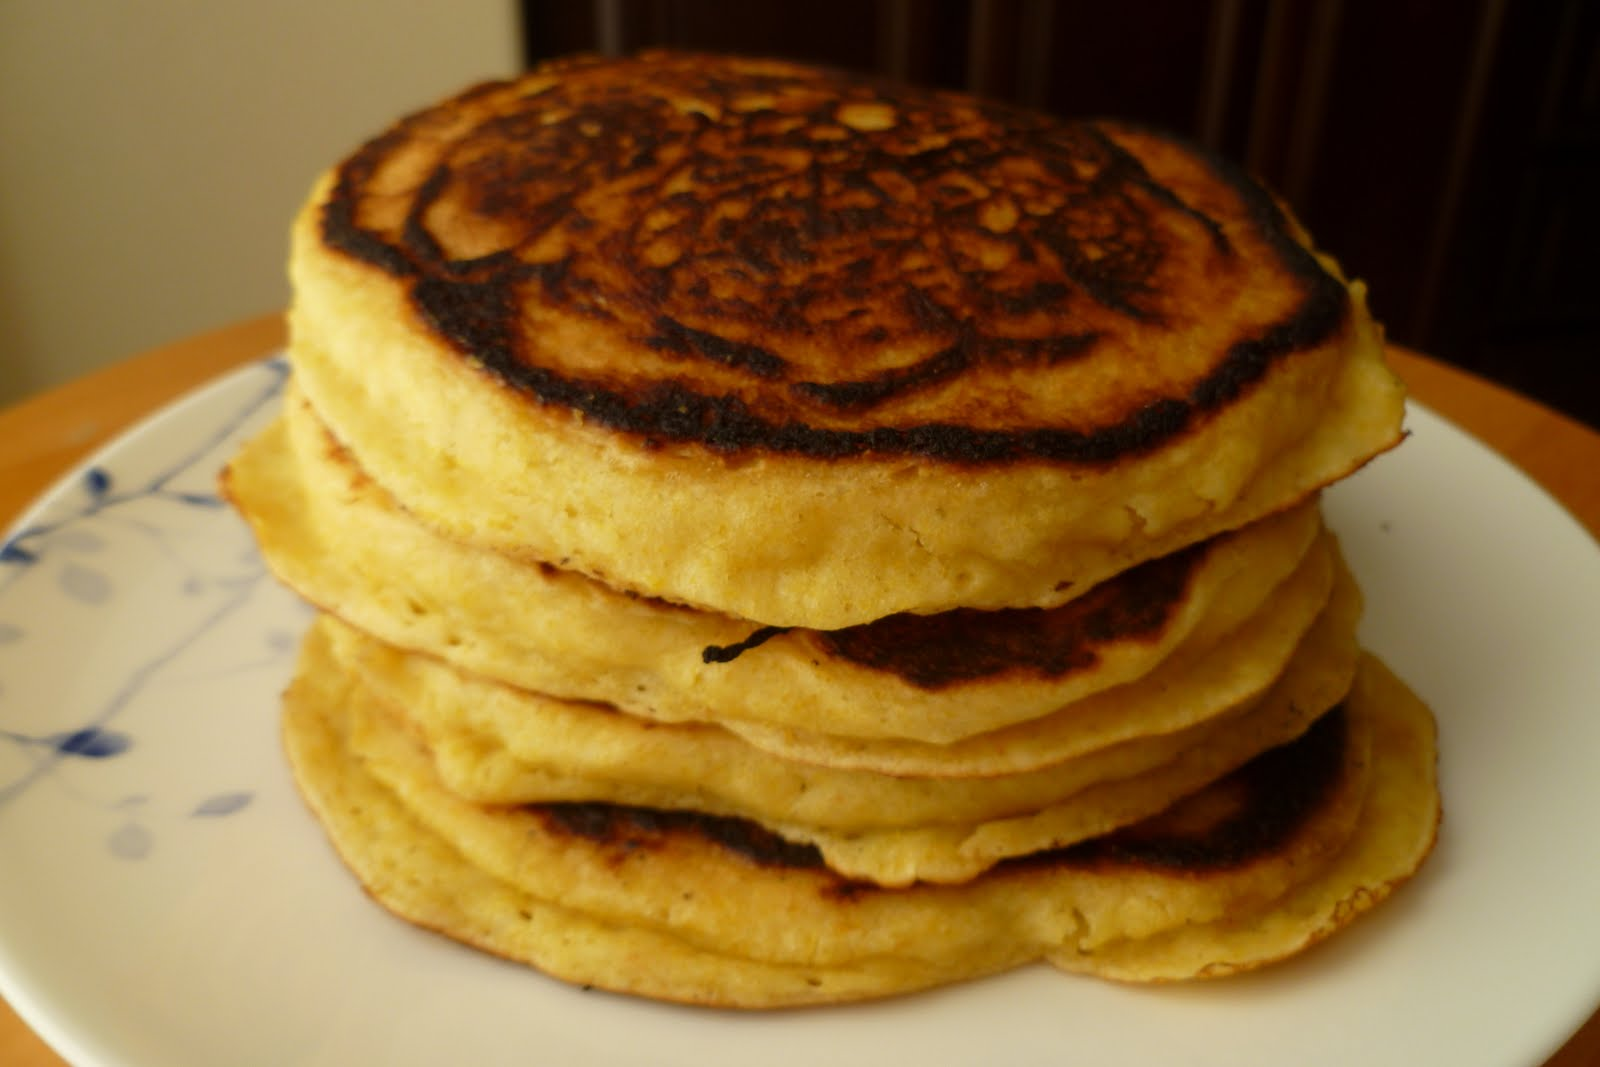 The Pastry Chef's Baking: Cornmeal Griddle Cakes